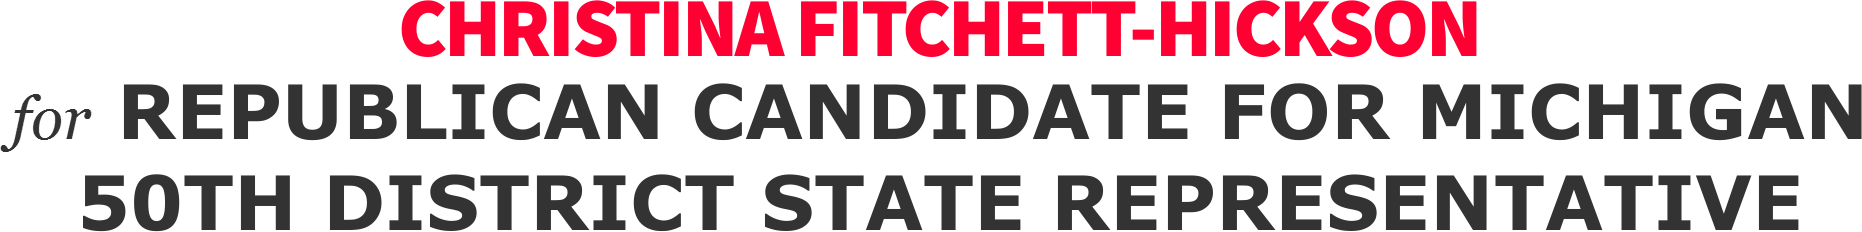 Christina Fitchett-Hickson Republican Candidate For Michigan 50th District State Representative